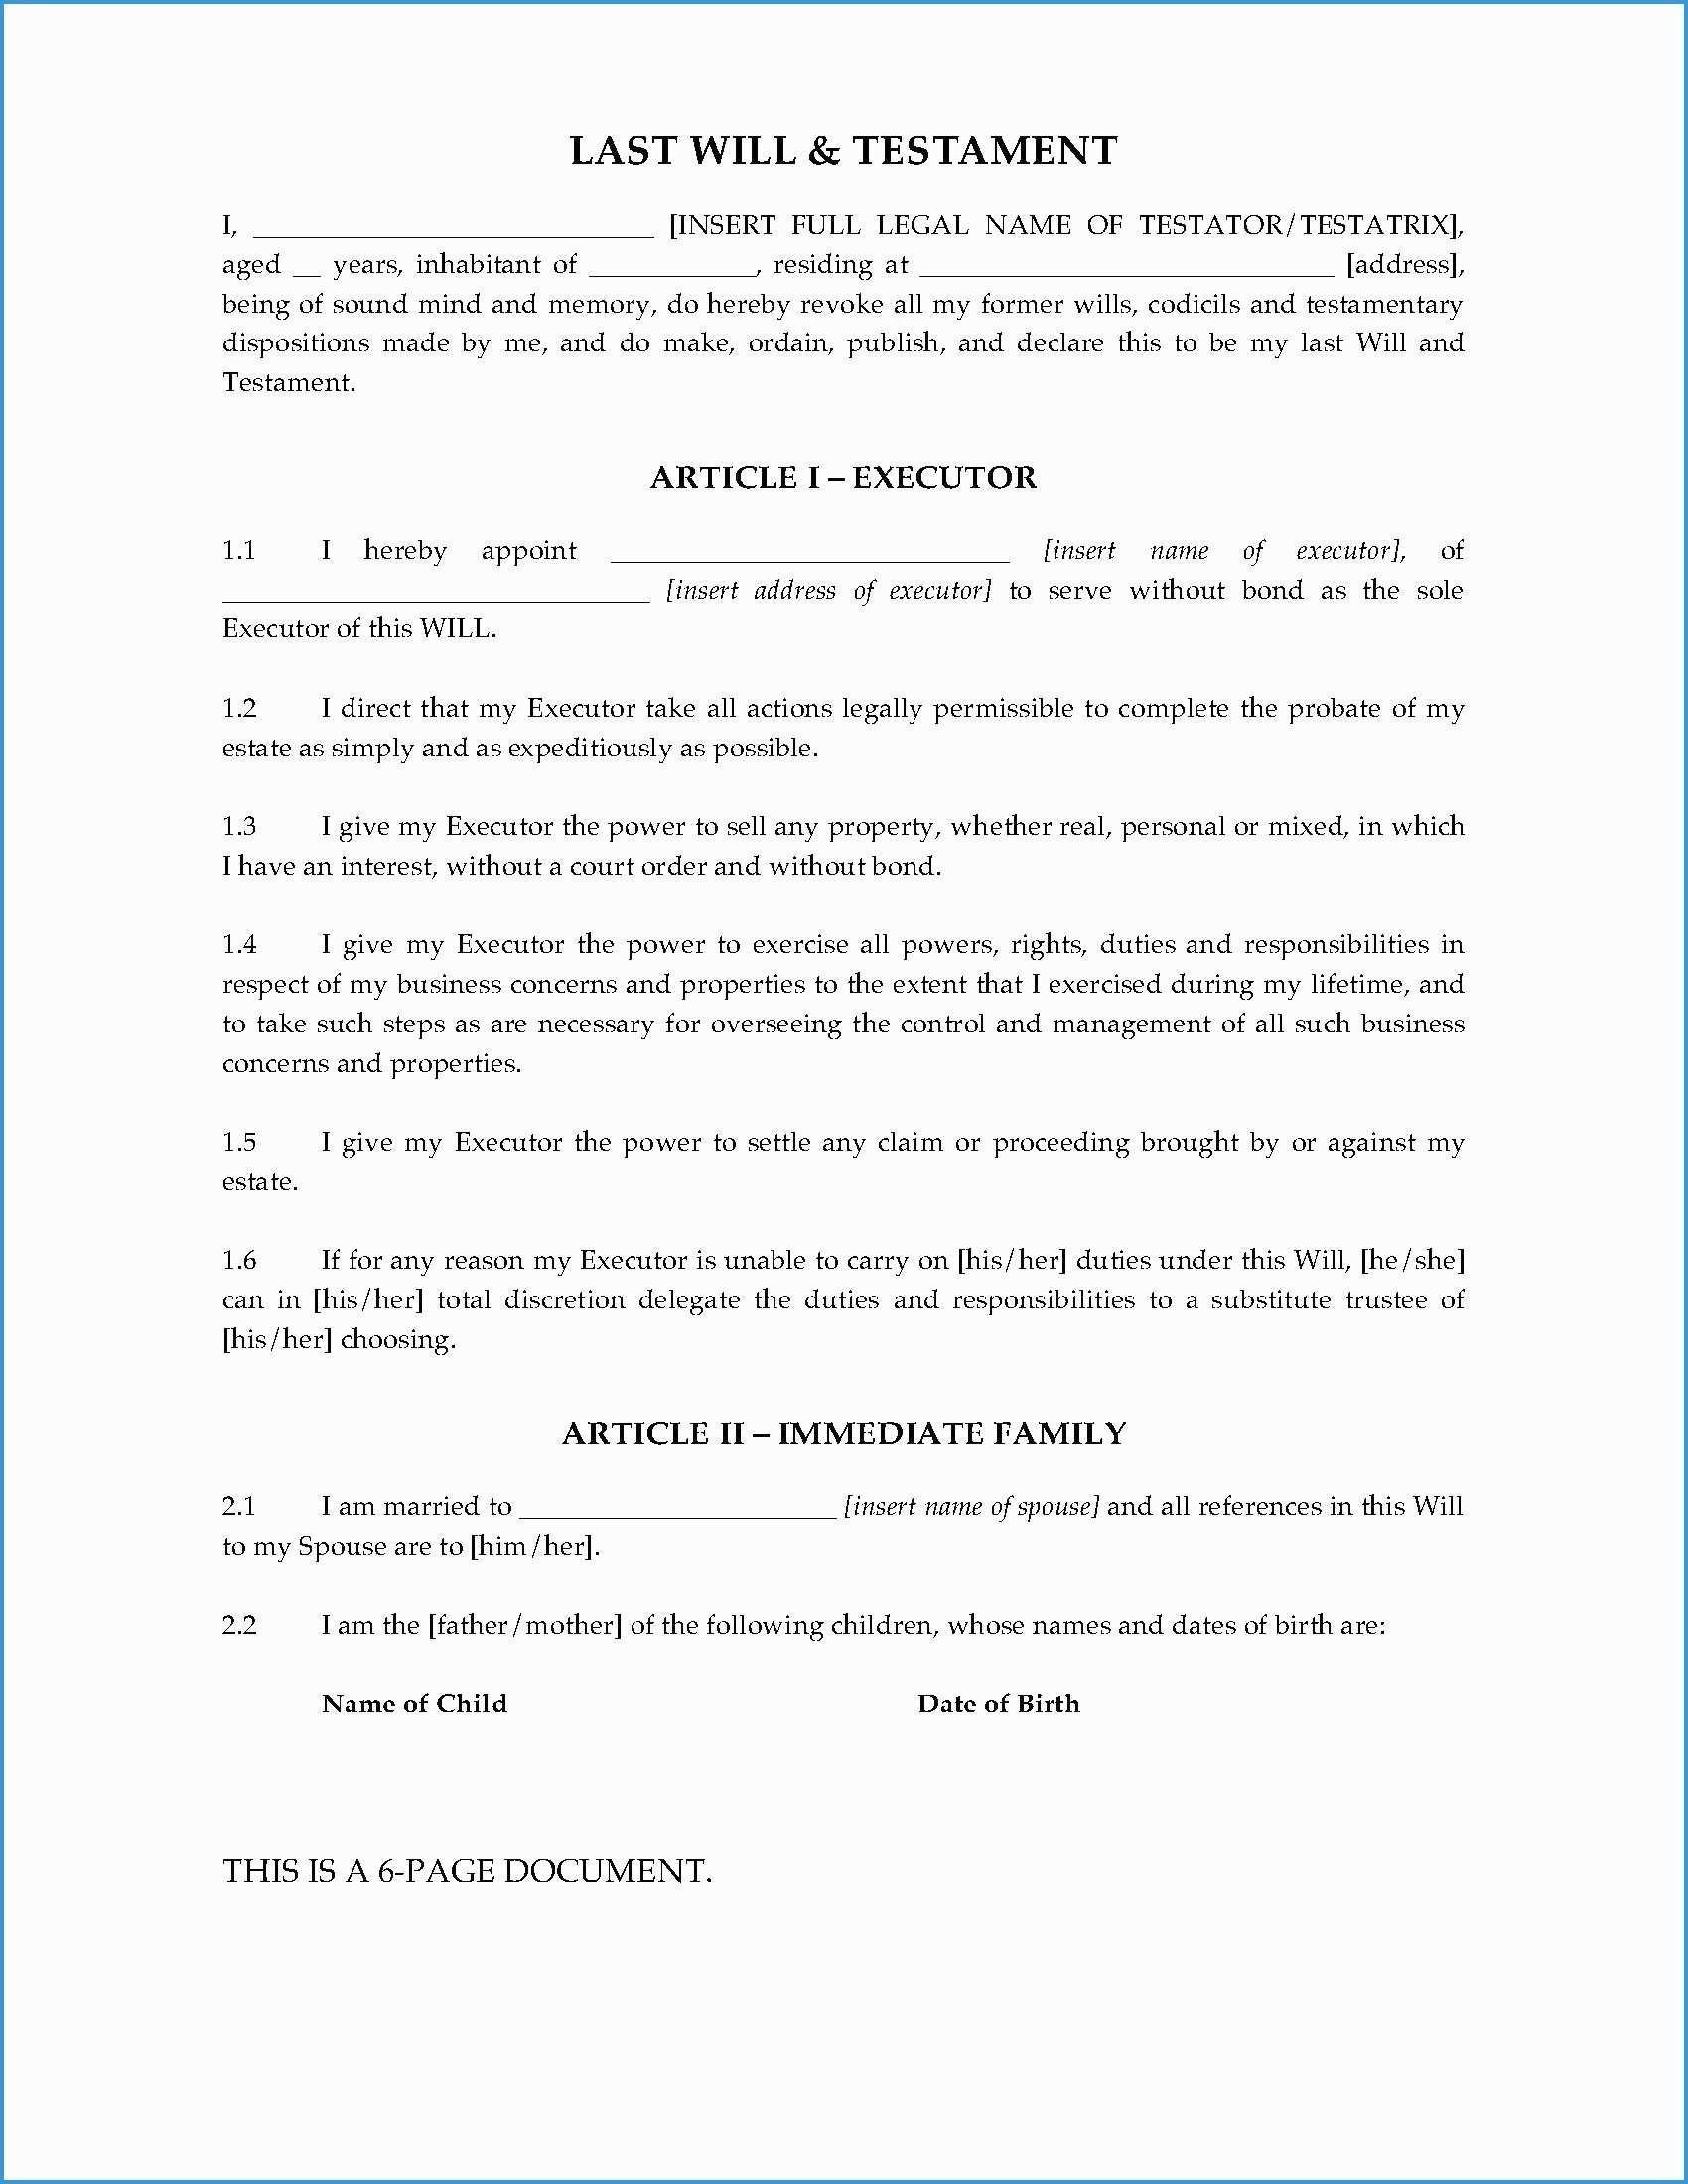 Last Will And Testament Free Template Tennessee